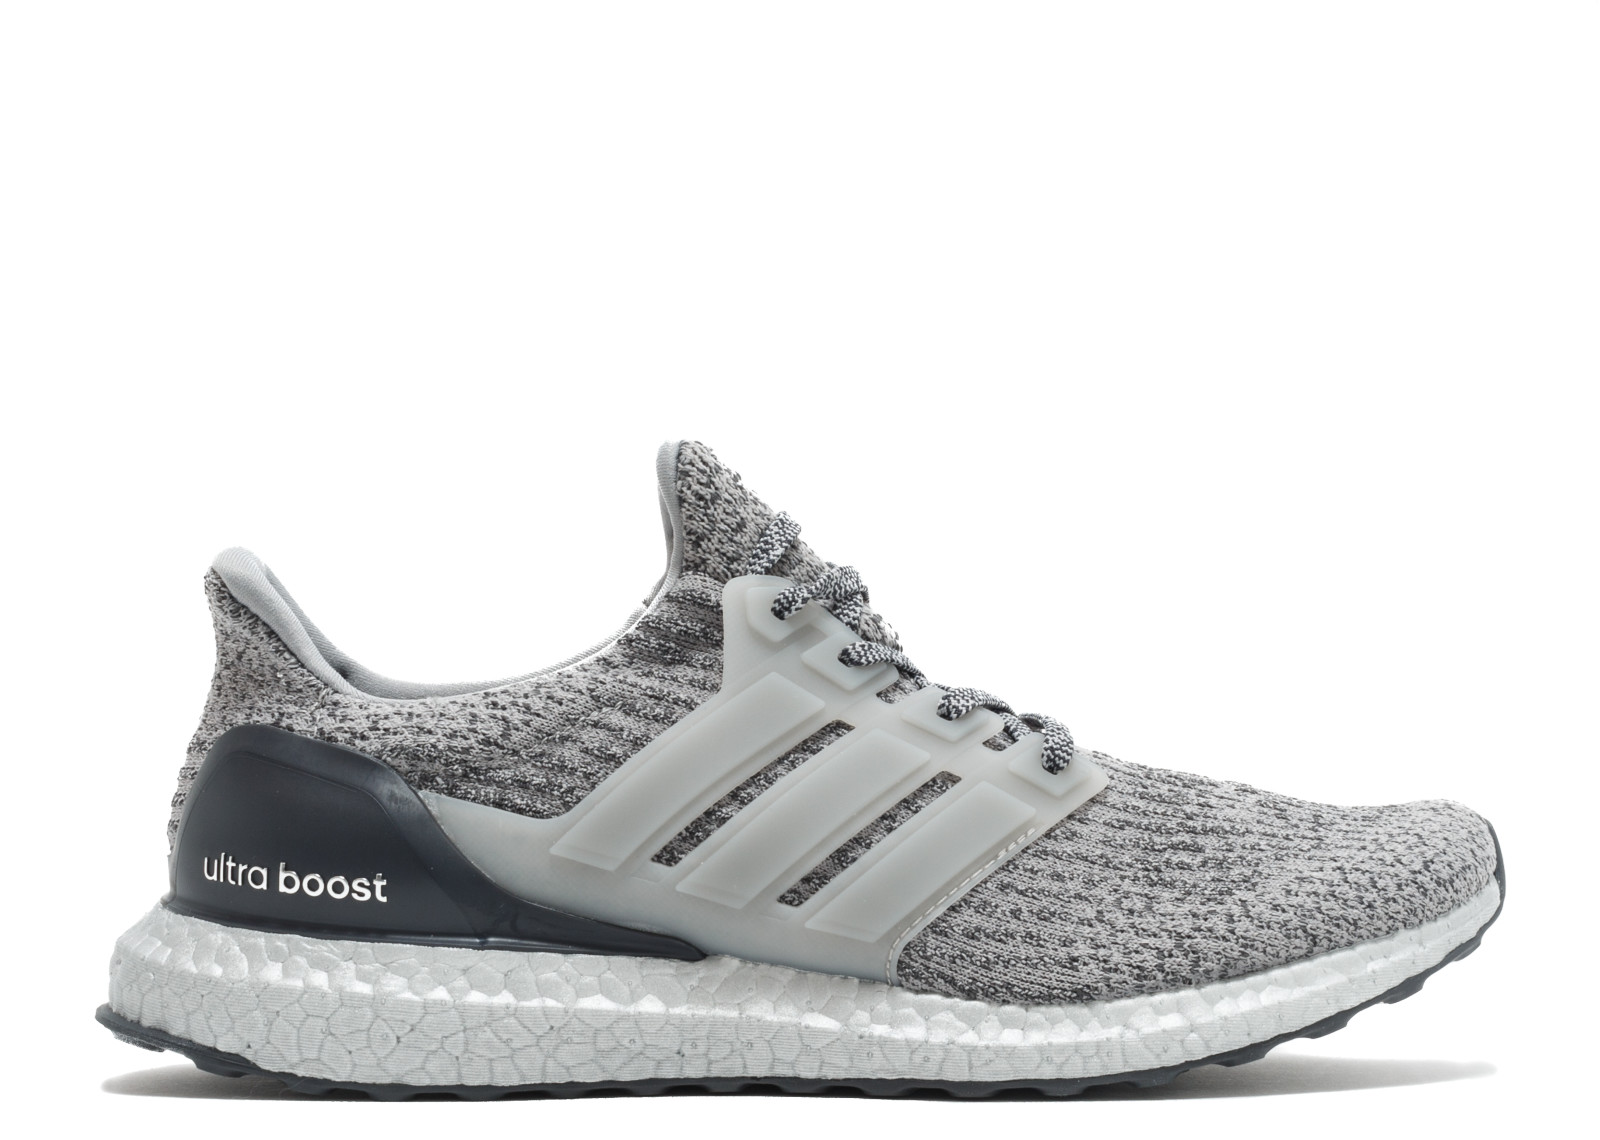 Adidas Ultra Boost 3.0 Silver Pack